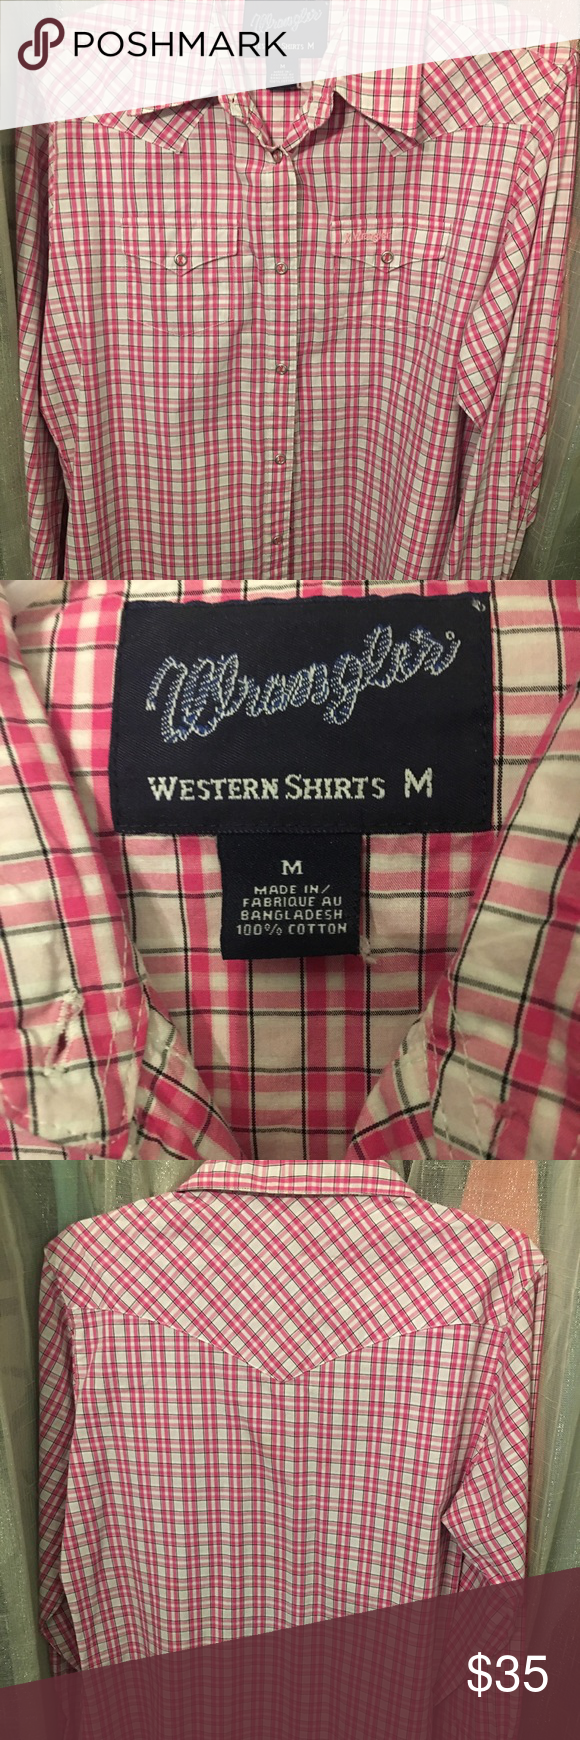 Wrangler Western Show Shirt Cute pink and white plaid show shirt. This is more of a pressed and formal shirt but looks cute with a t-shirt underneath. Only worn a couple times Wrangler Tops Button Down Shirts